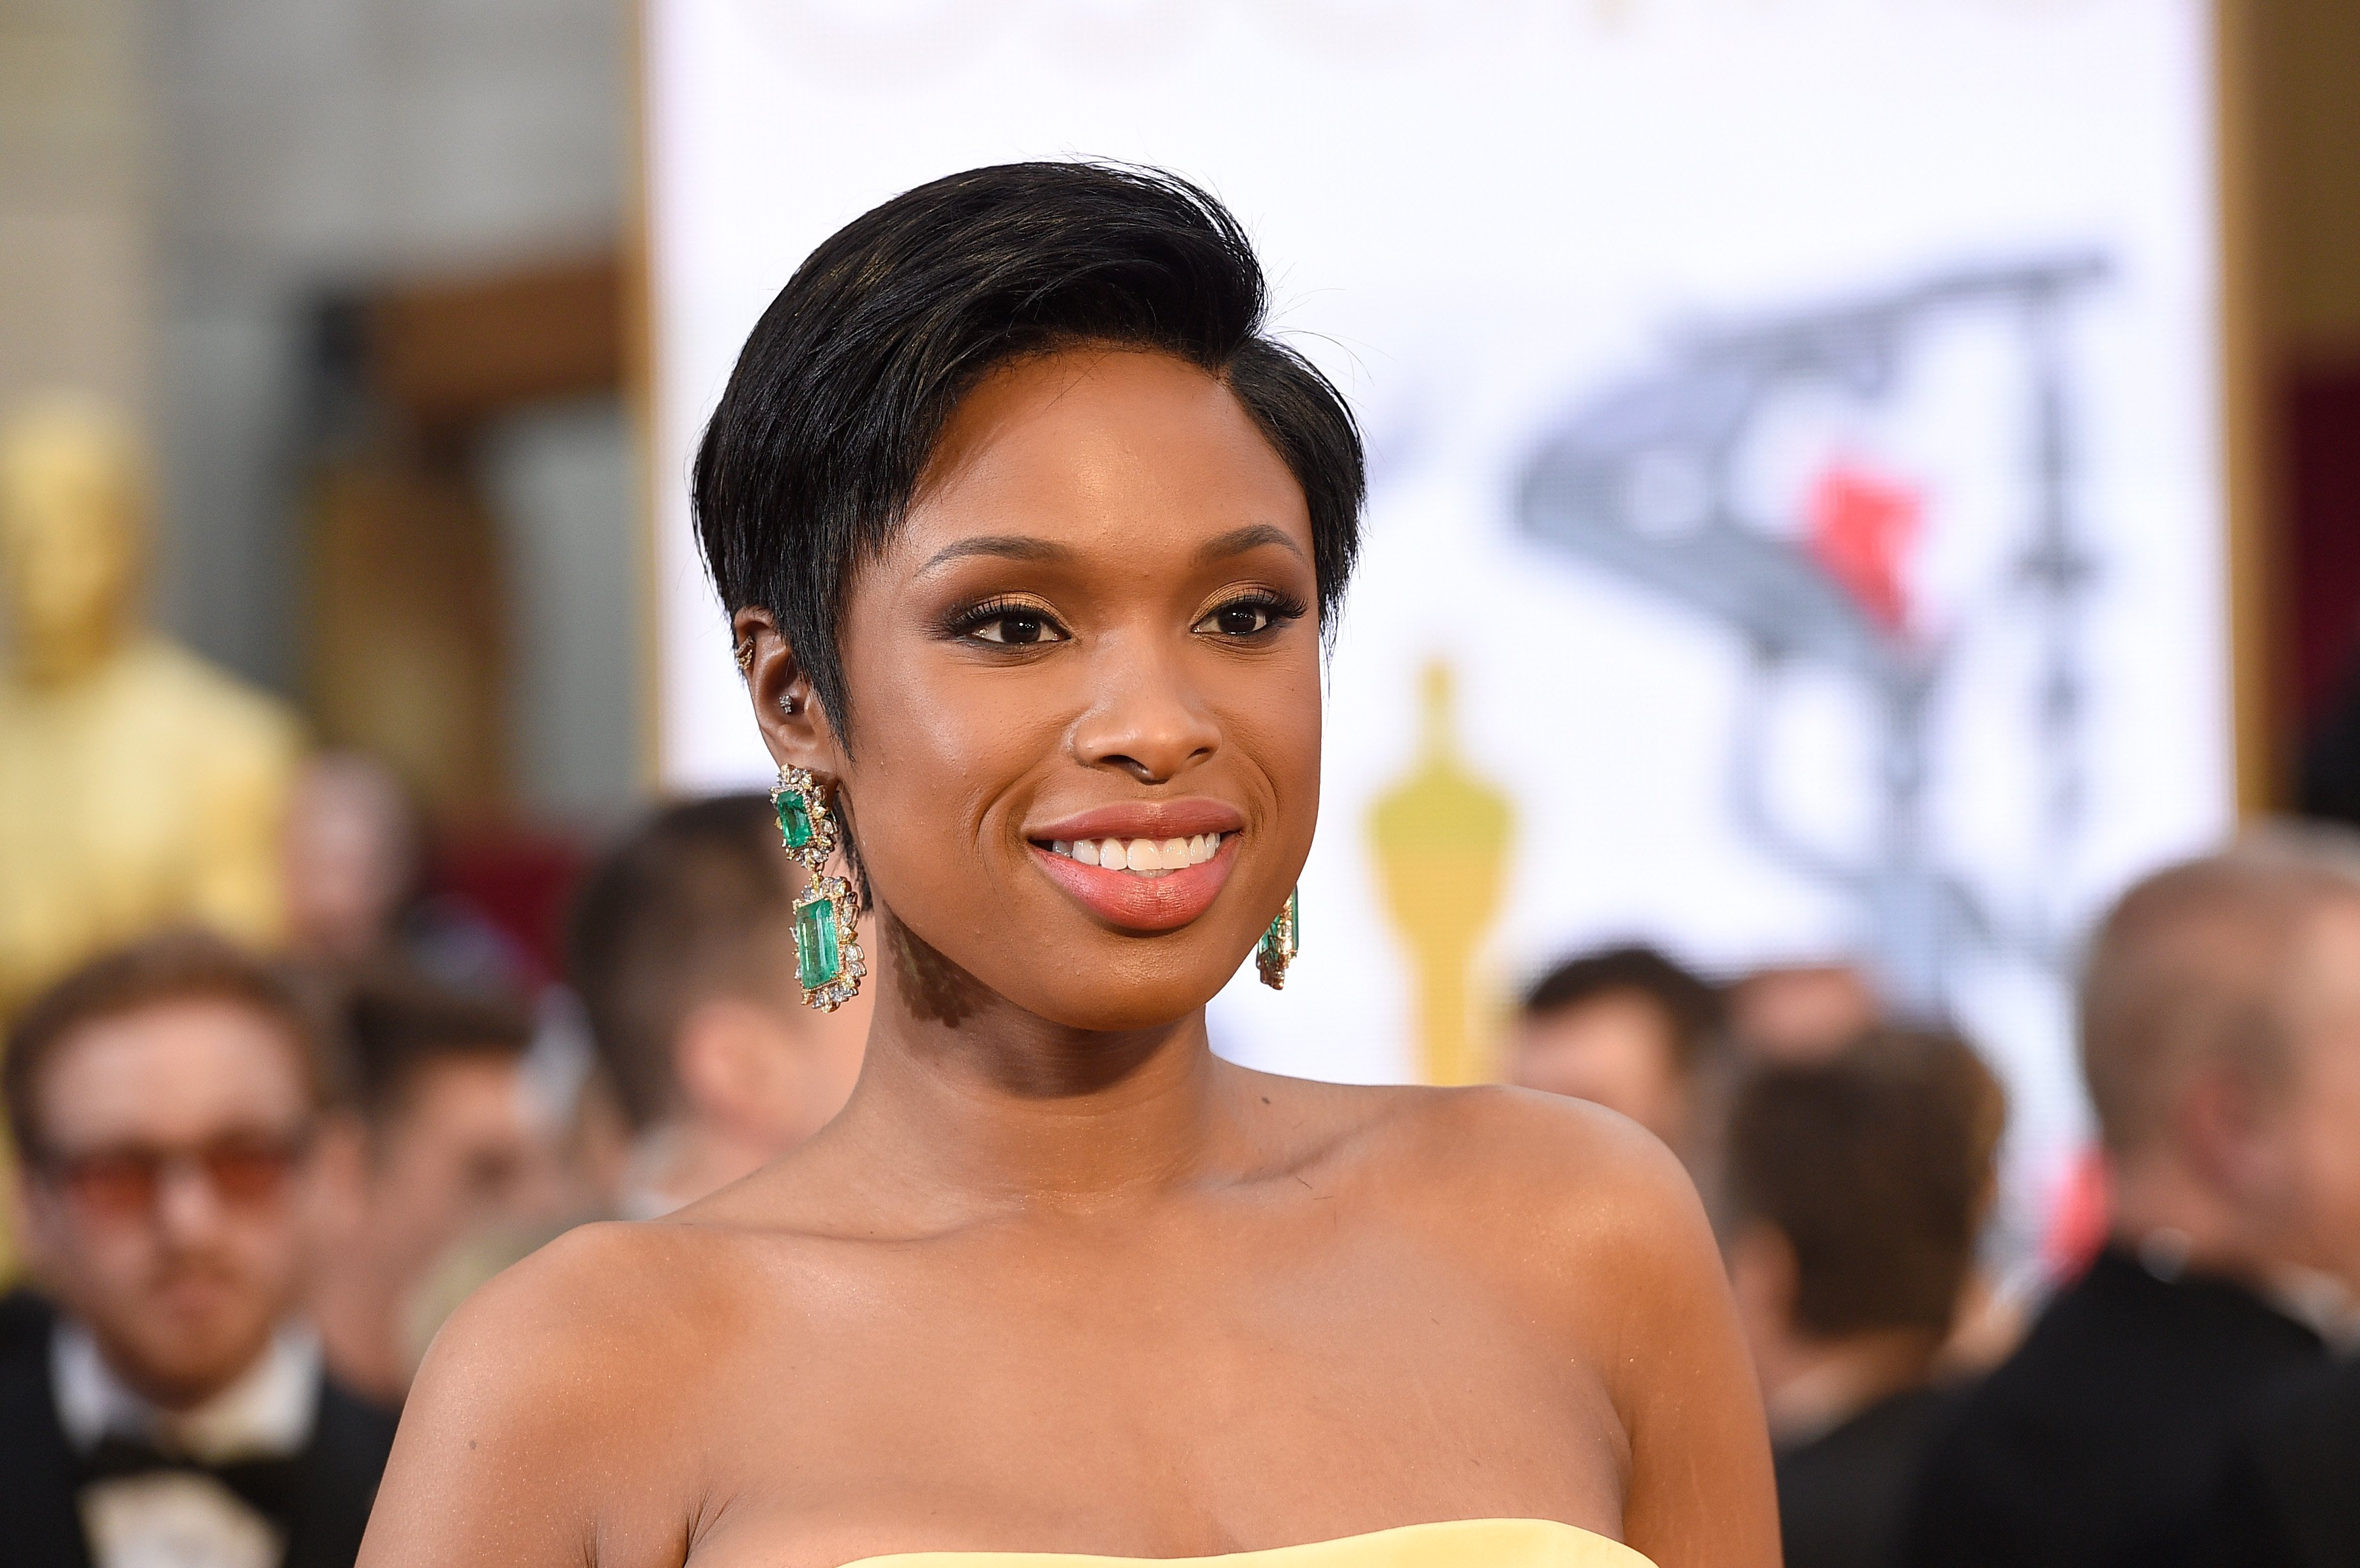 Jennifer Hudson at the 87th Annual Academy Awards at Hollywood & Highland Center on February 22, 2015 in Hollywood, California.| Source: Getty Images